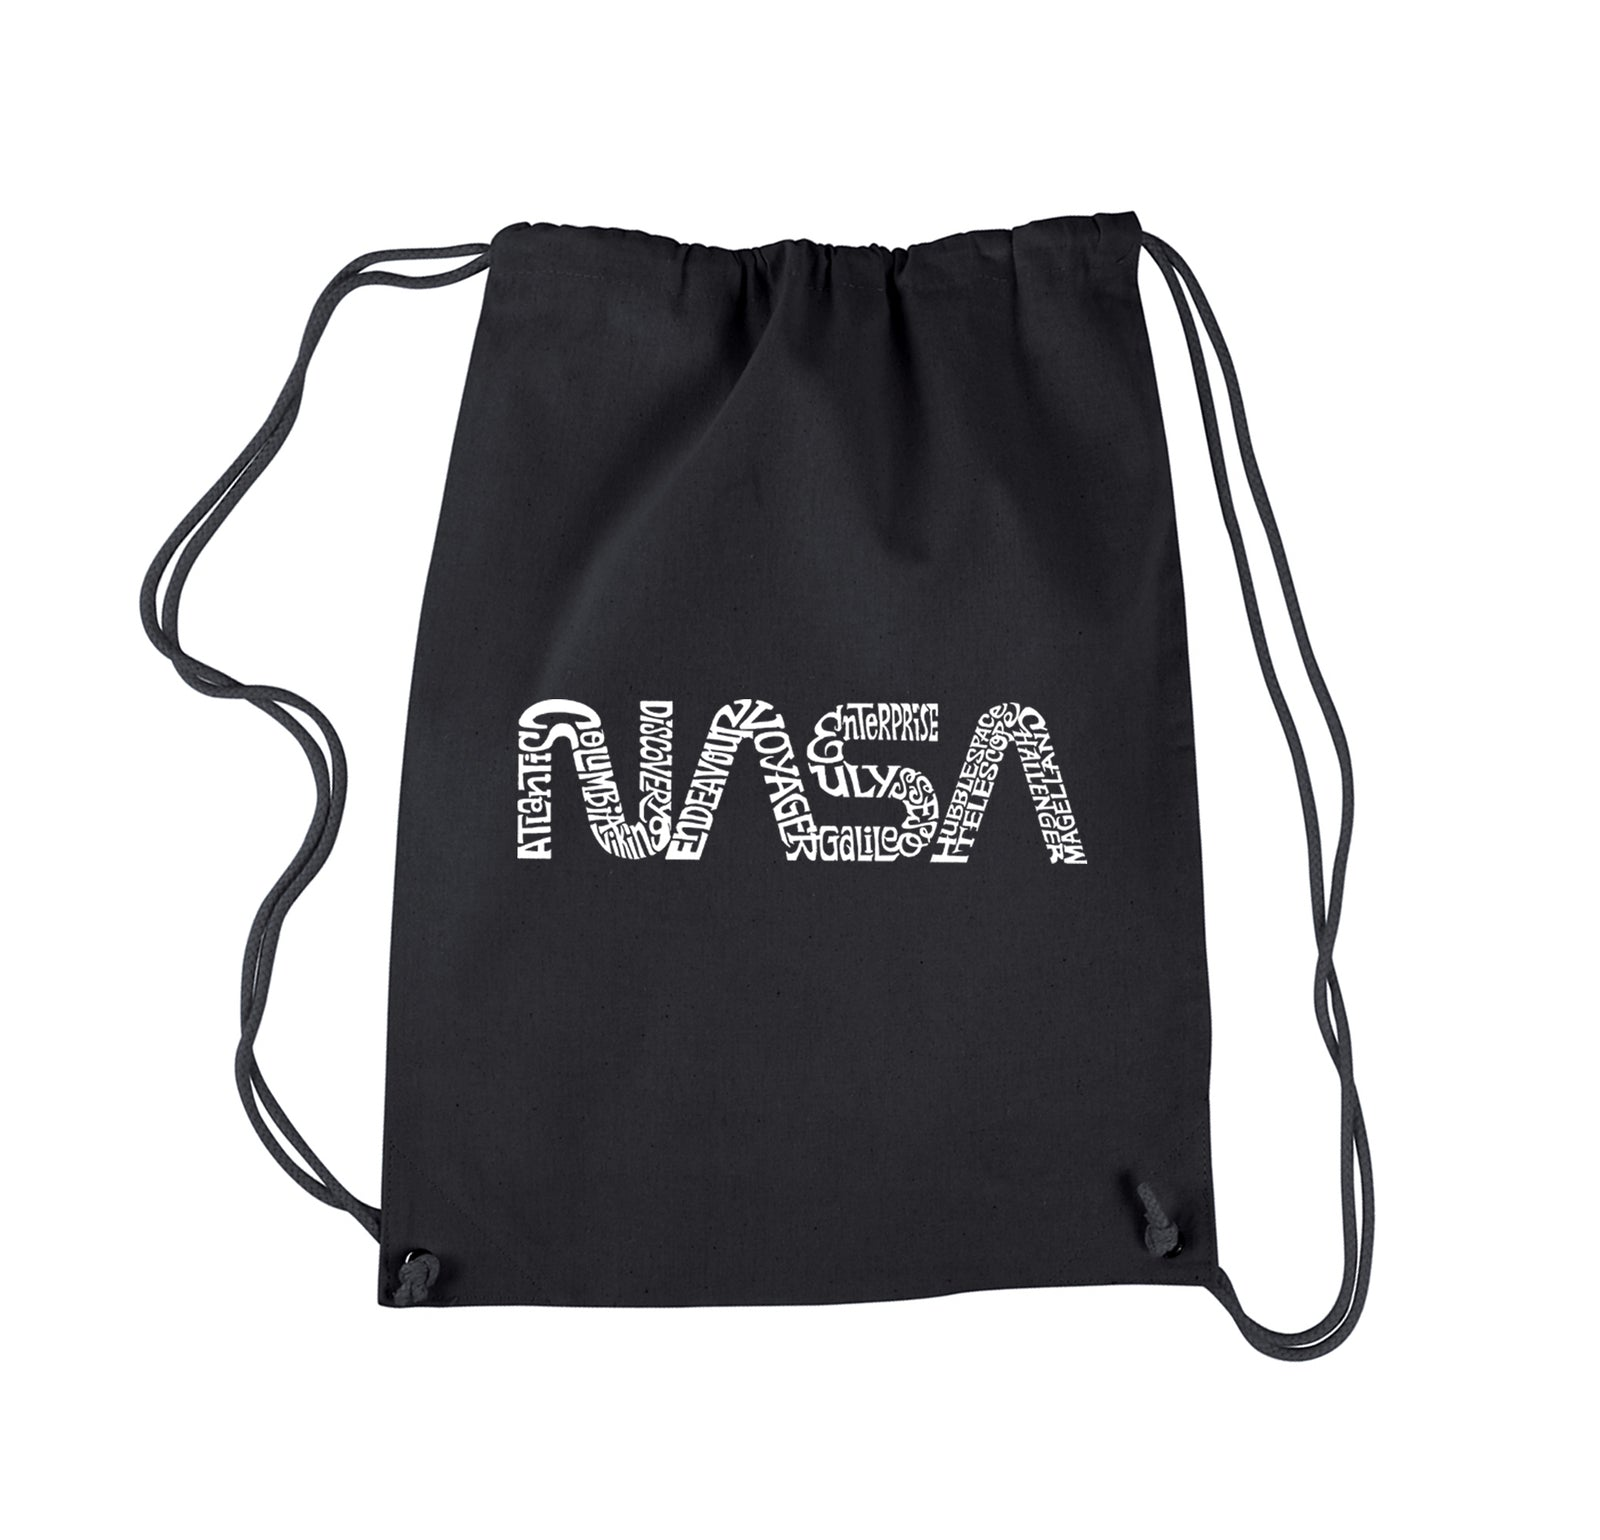 Word Art Drawstring Backpack - Worm Nasa